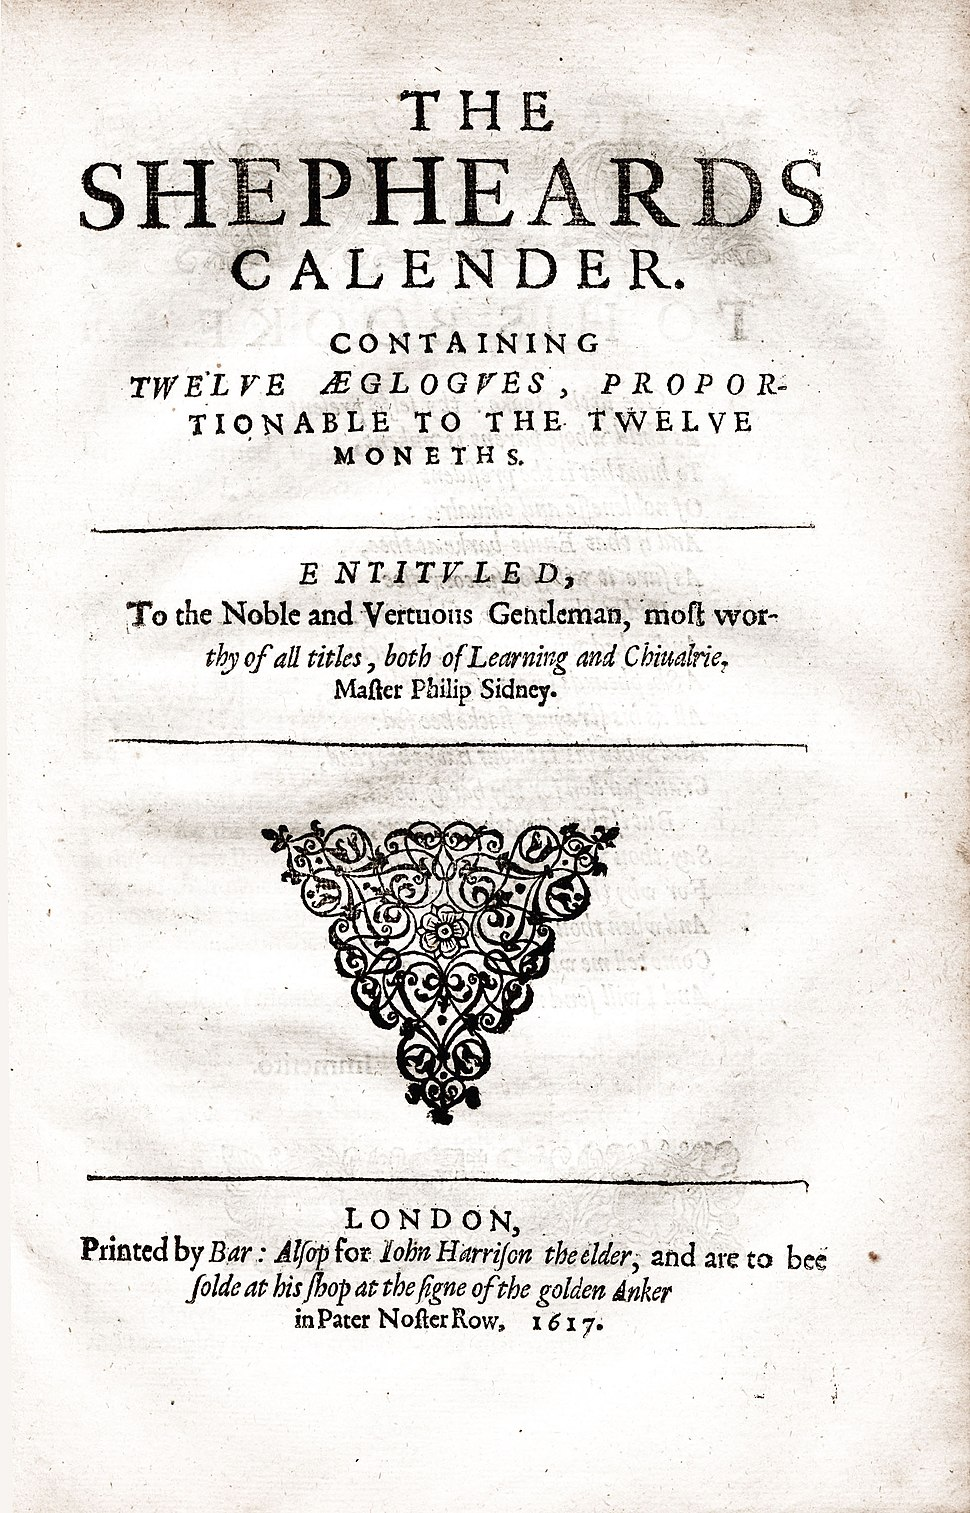 Title Page of a 1617 Edition of The Shepherd's Calendar